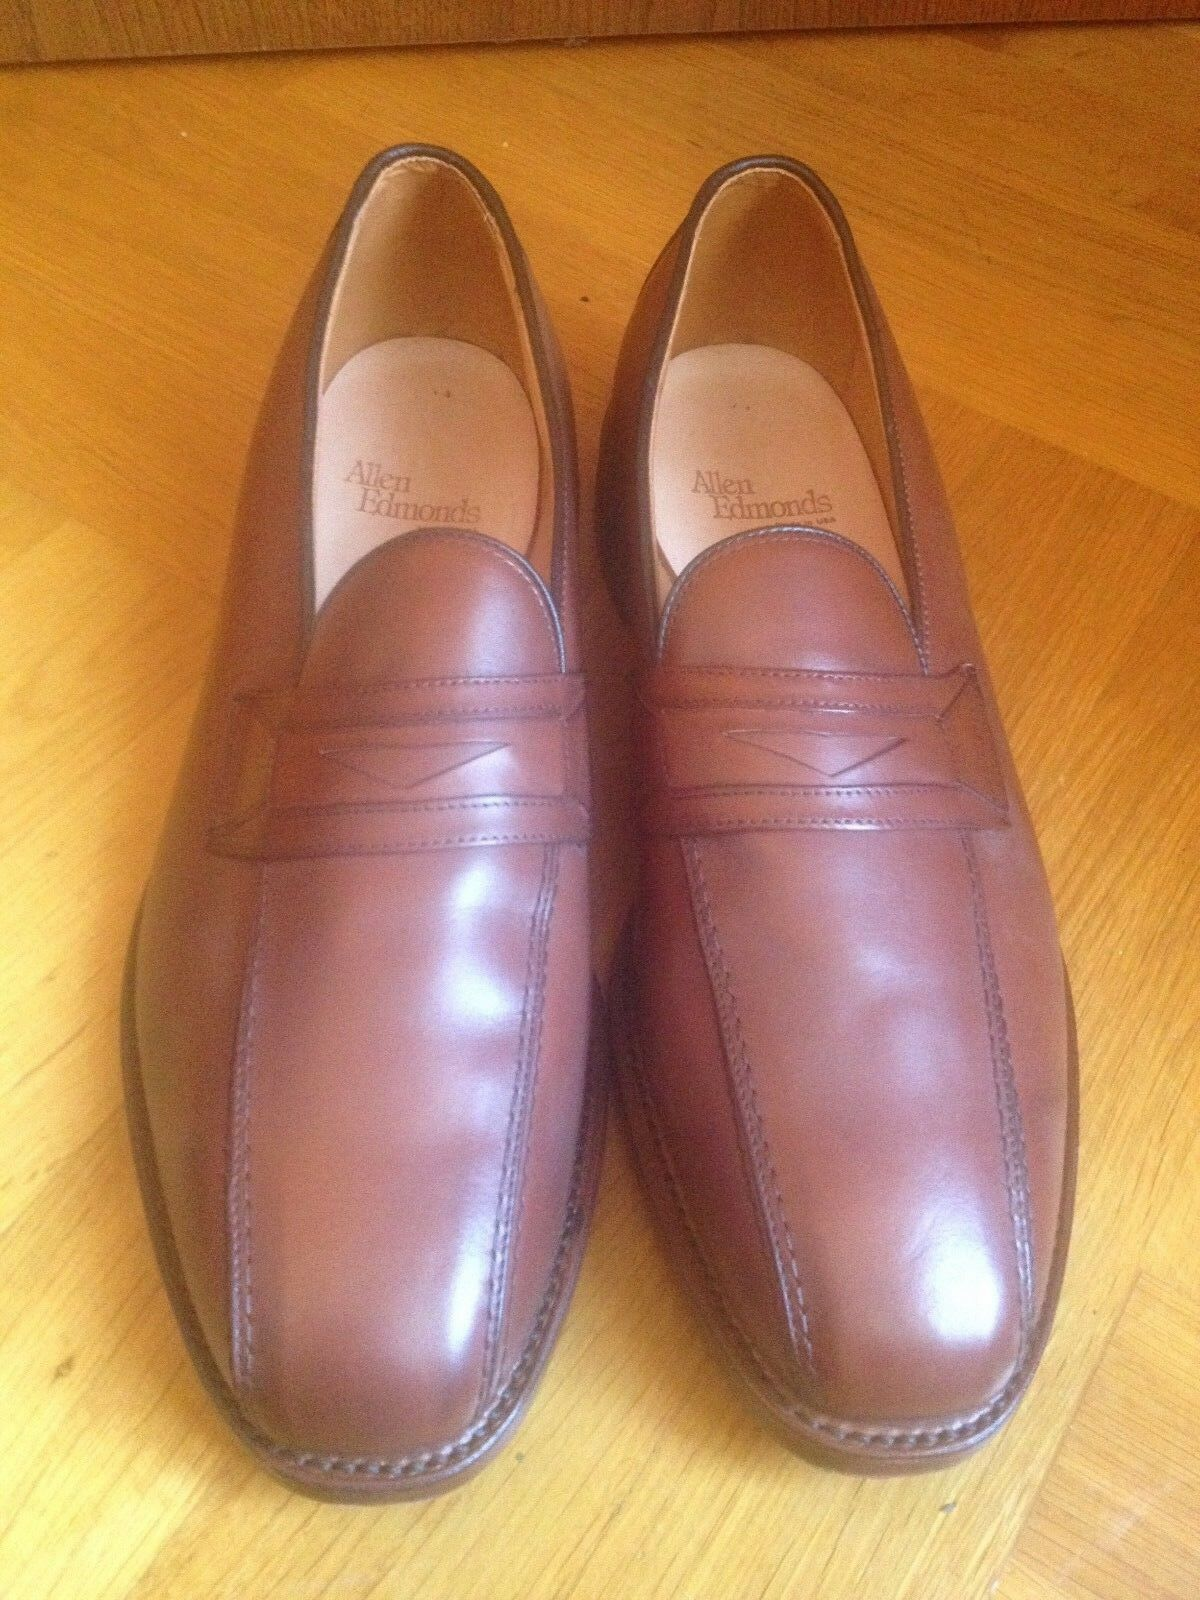 Allen edmonds zapatos caballero mocasín Business cuero Color cognac 12 d  46